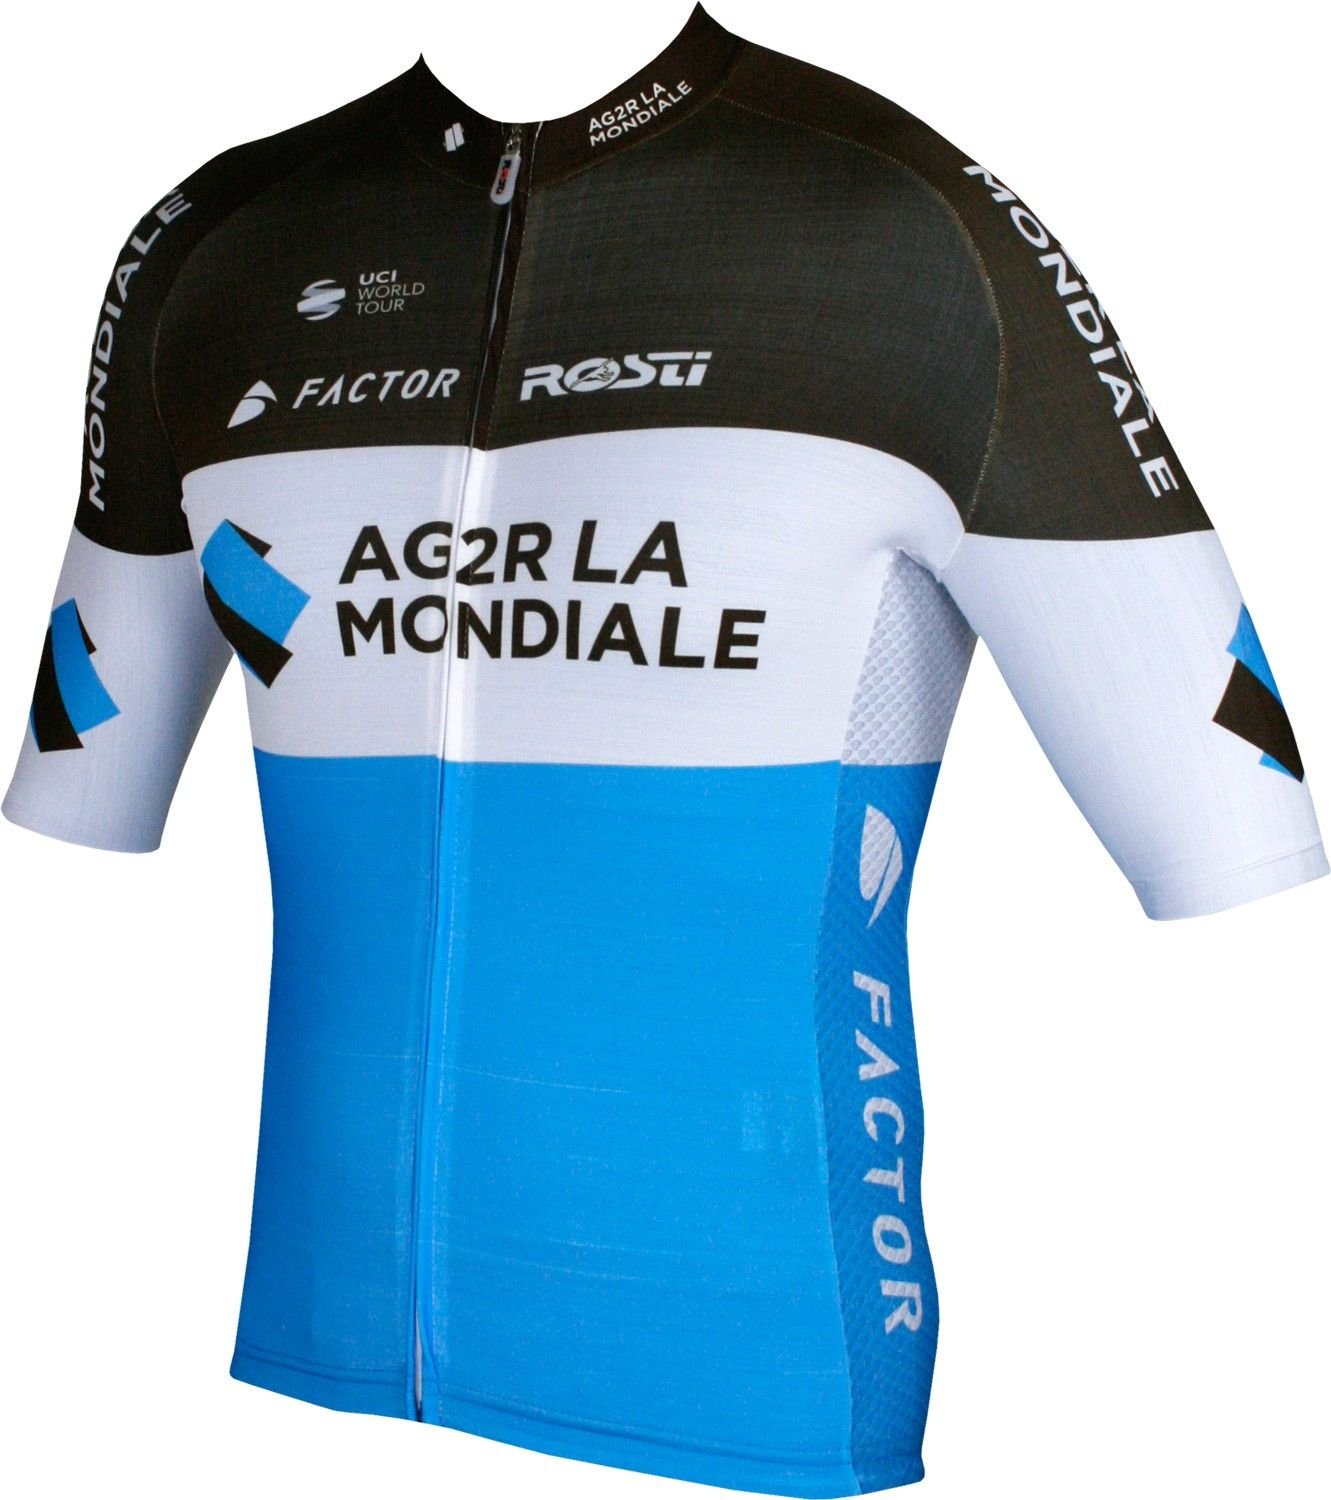 1128497e3 ... short sleeve cycling jersey (long zip) - ROSTI professional. Previous